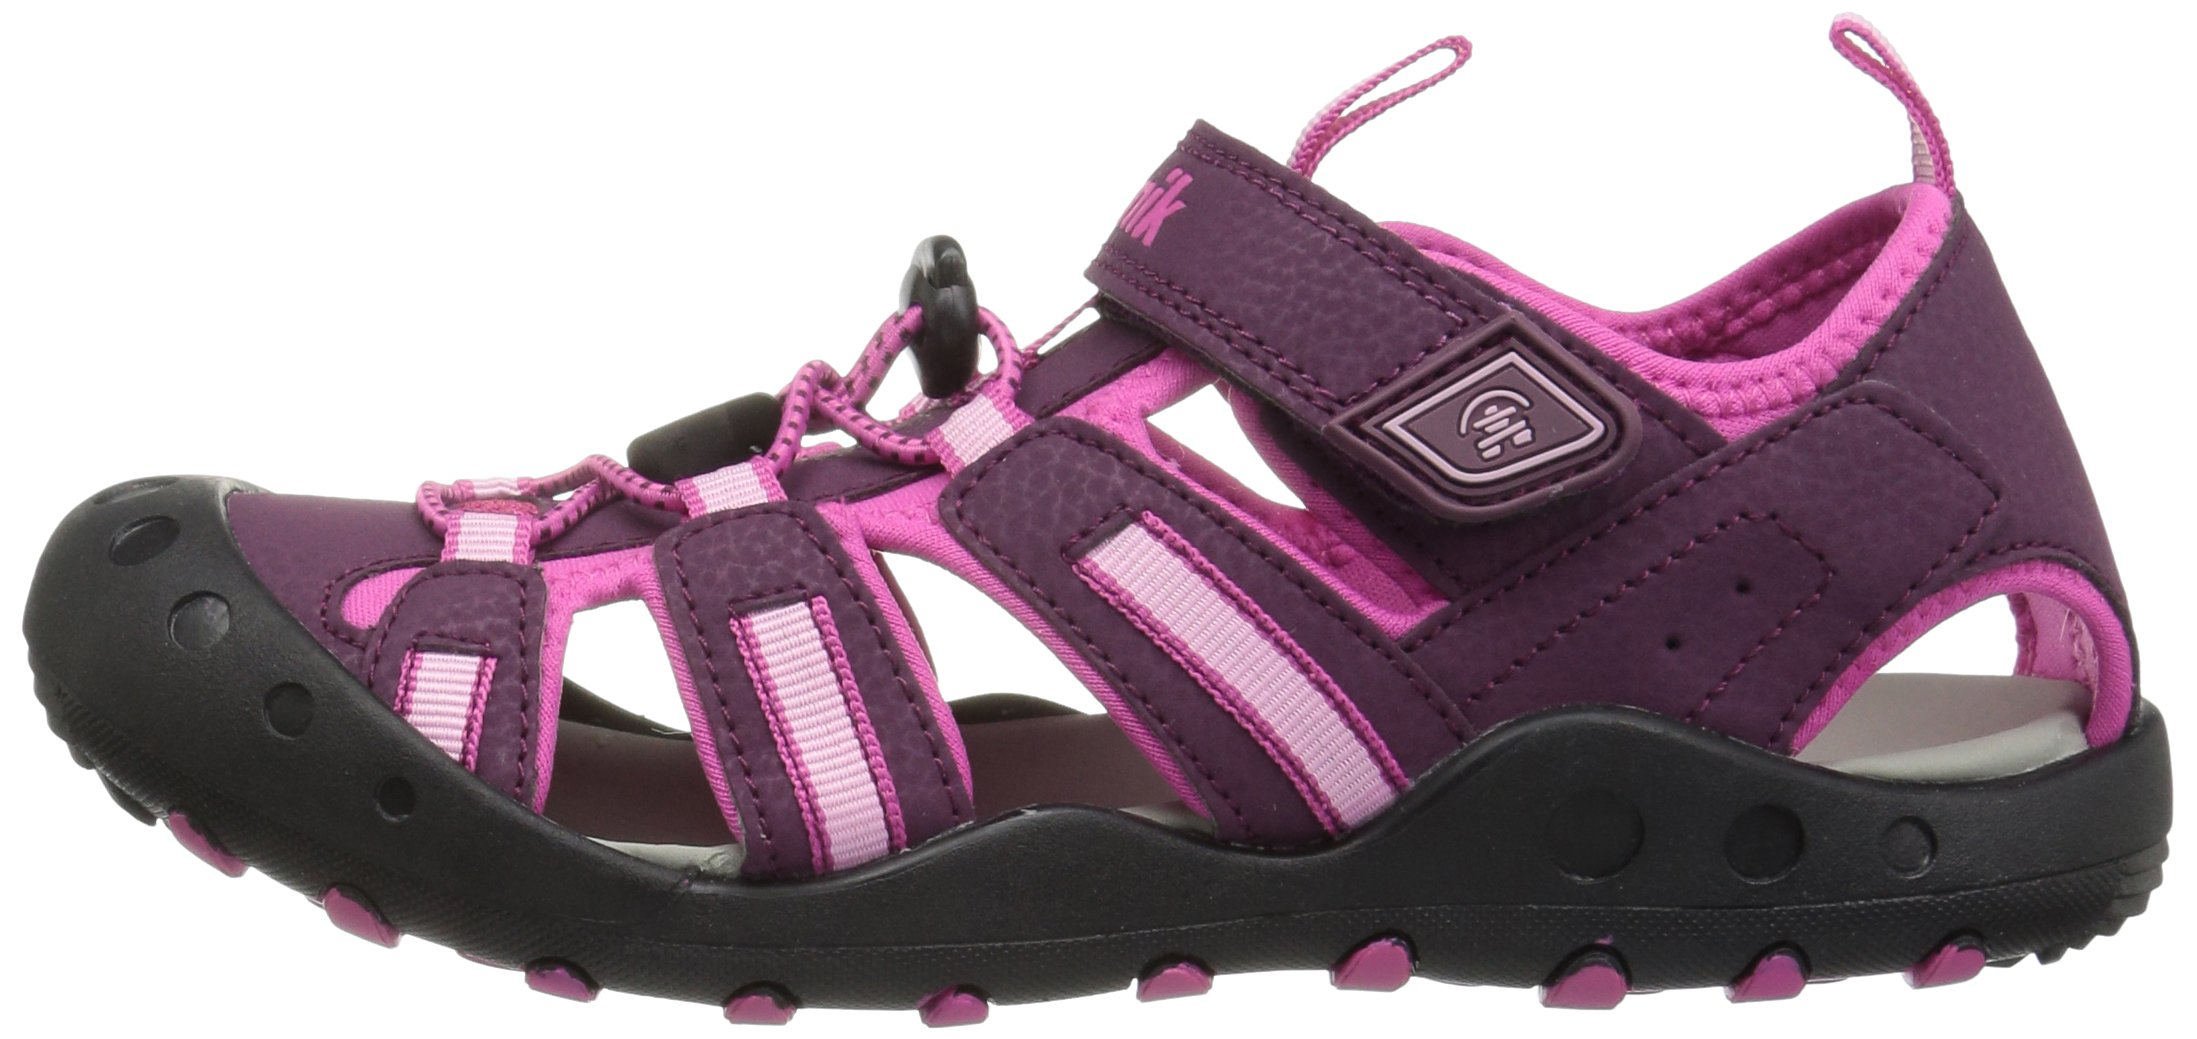 Kamik Toddler Crab Sandals Plum 4 by Kamik (Image #5)